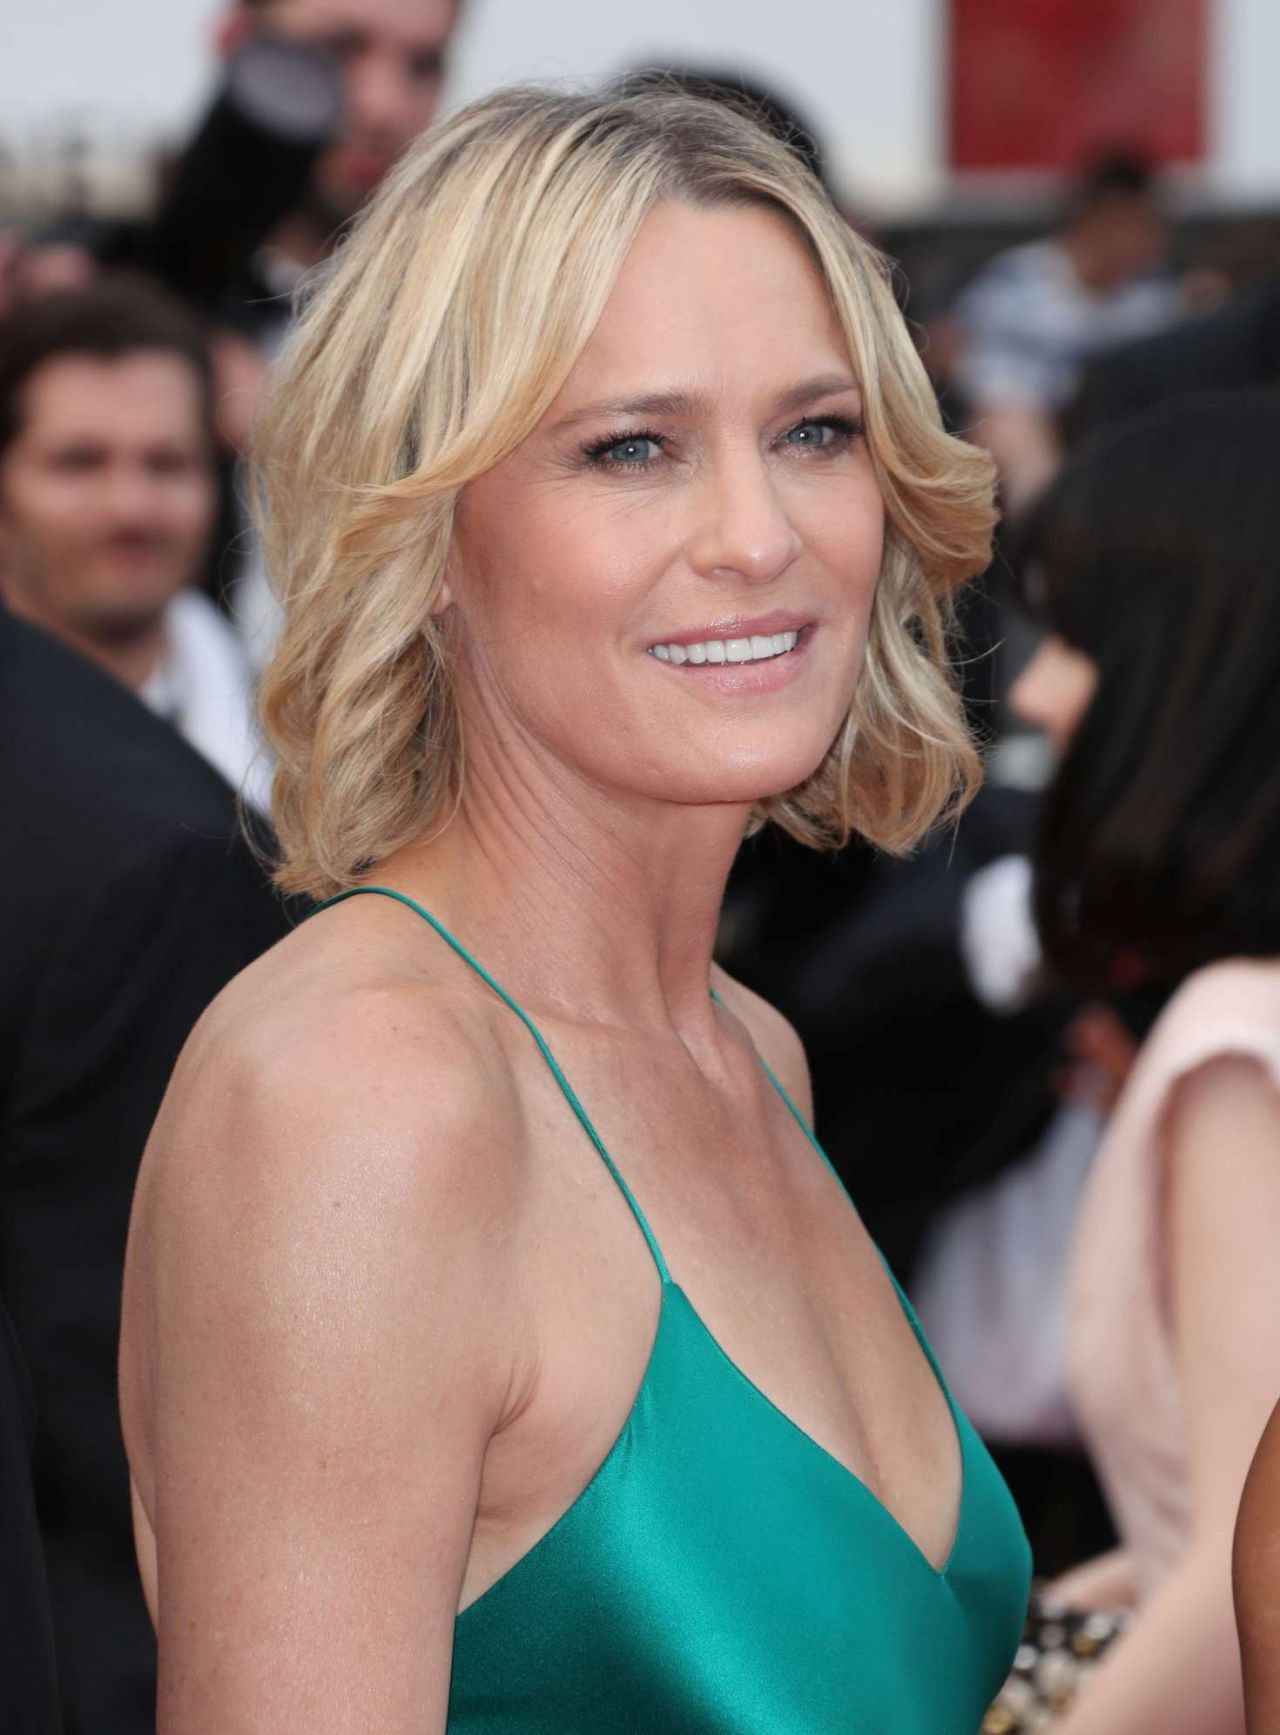 Robin wright loveless nelyubov screening at cannes film festival naked (44 pics)